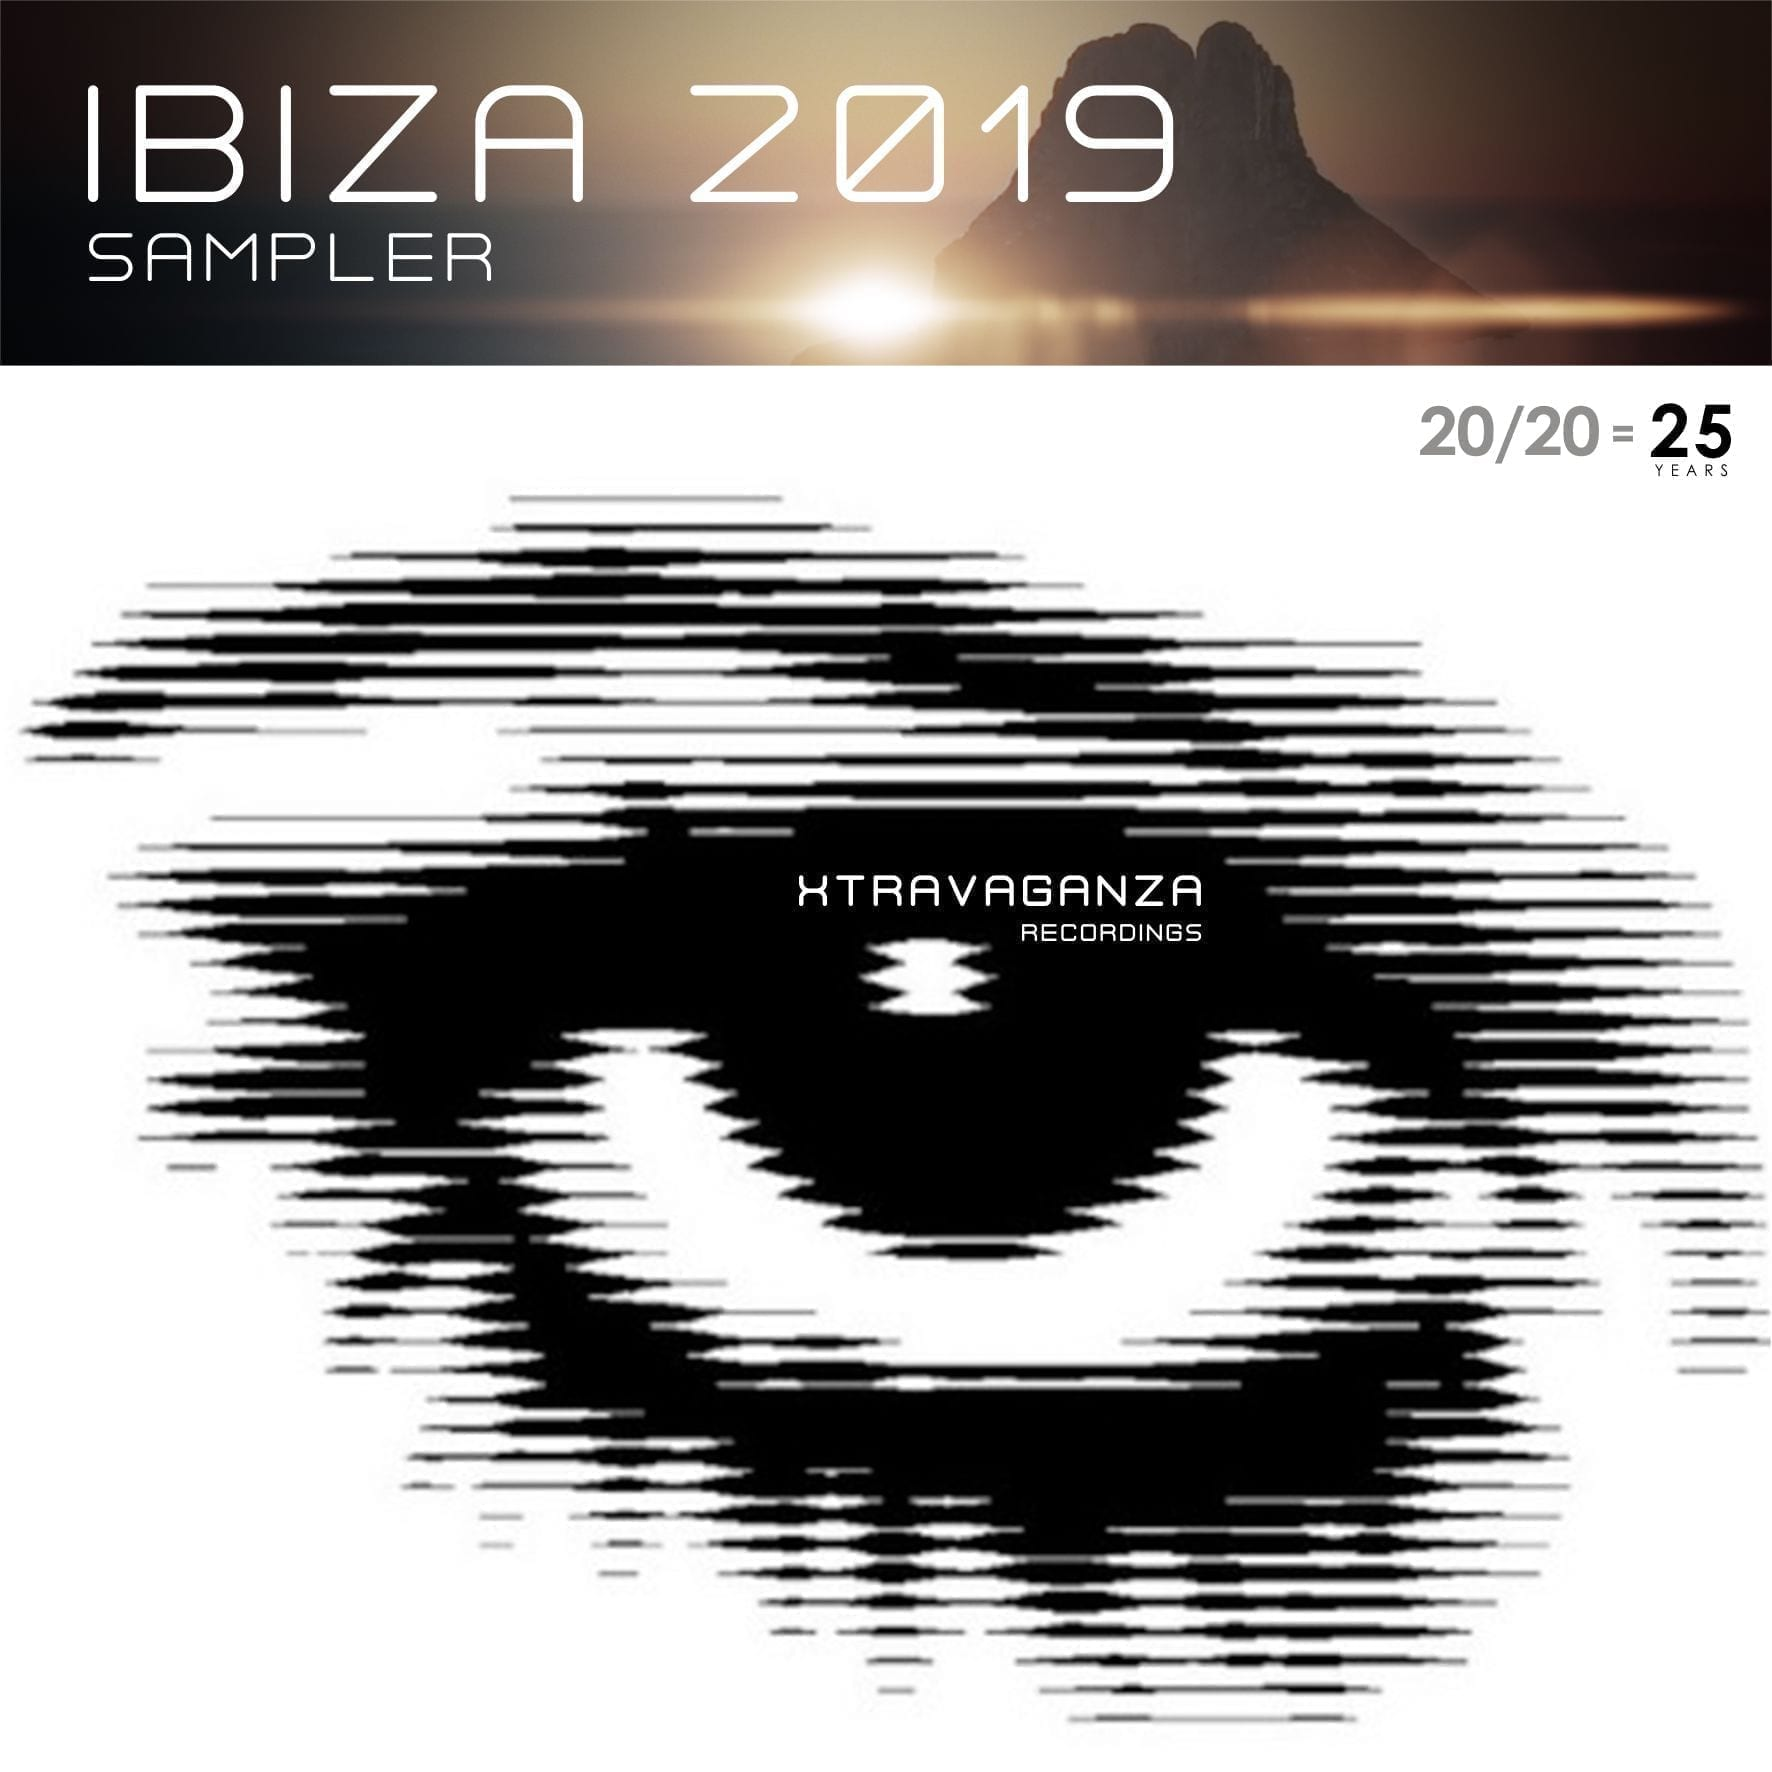 Extravaganza Recordings return with their Ibiza 2019 Sampler